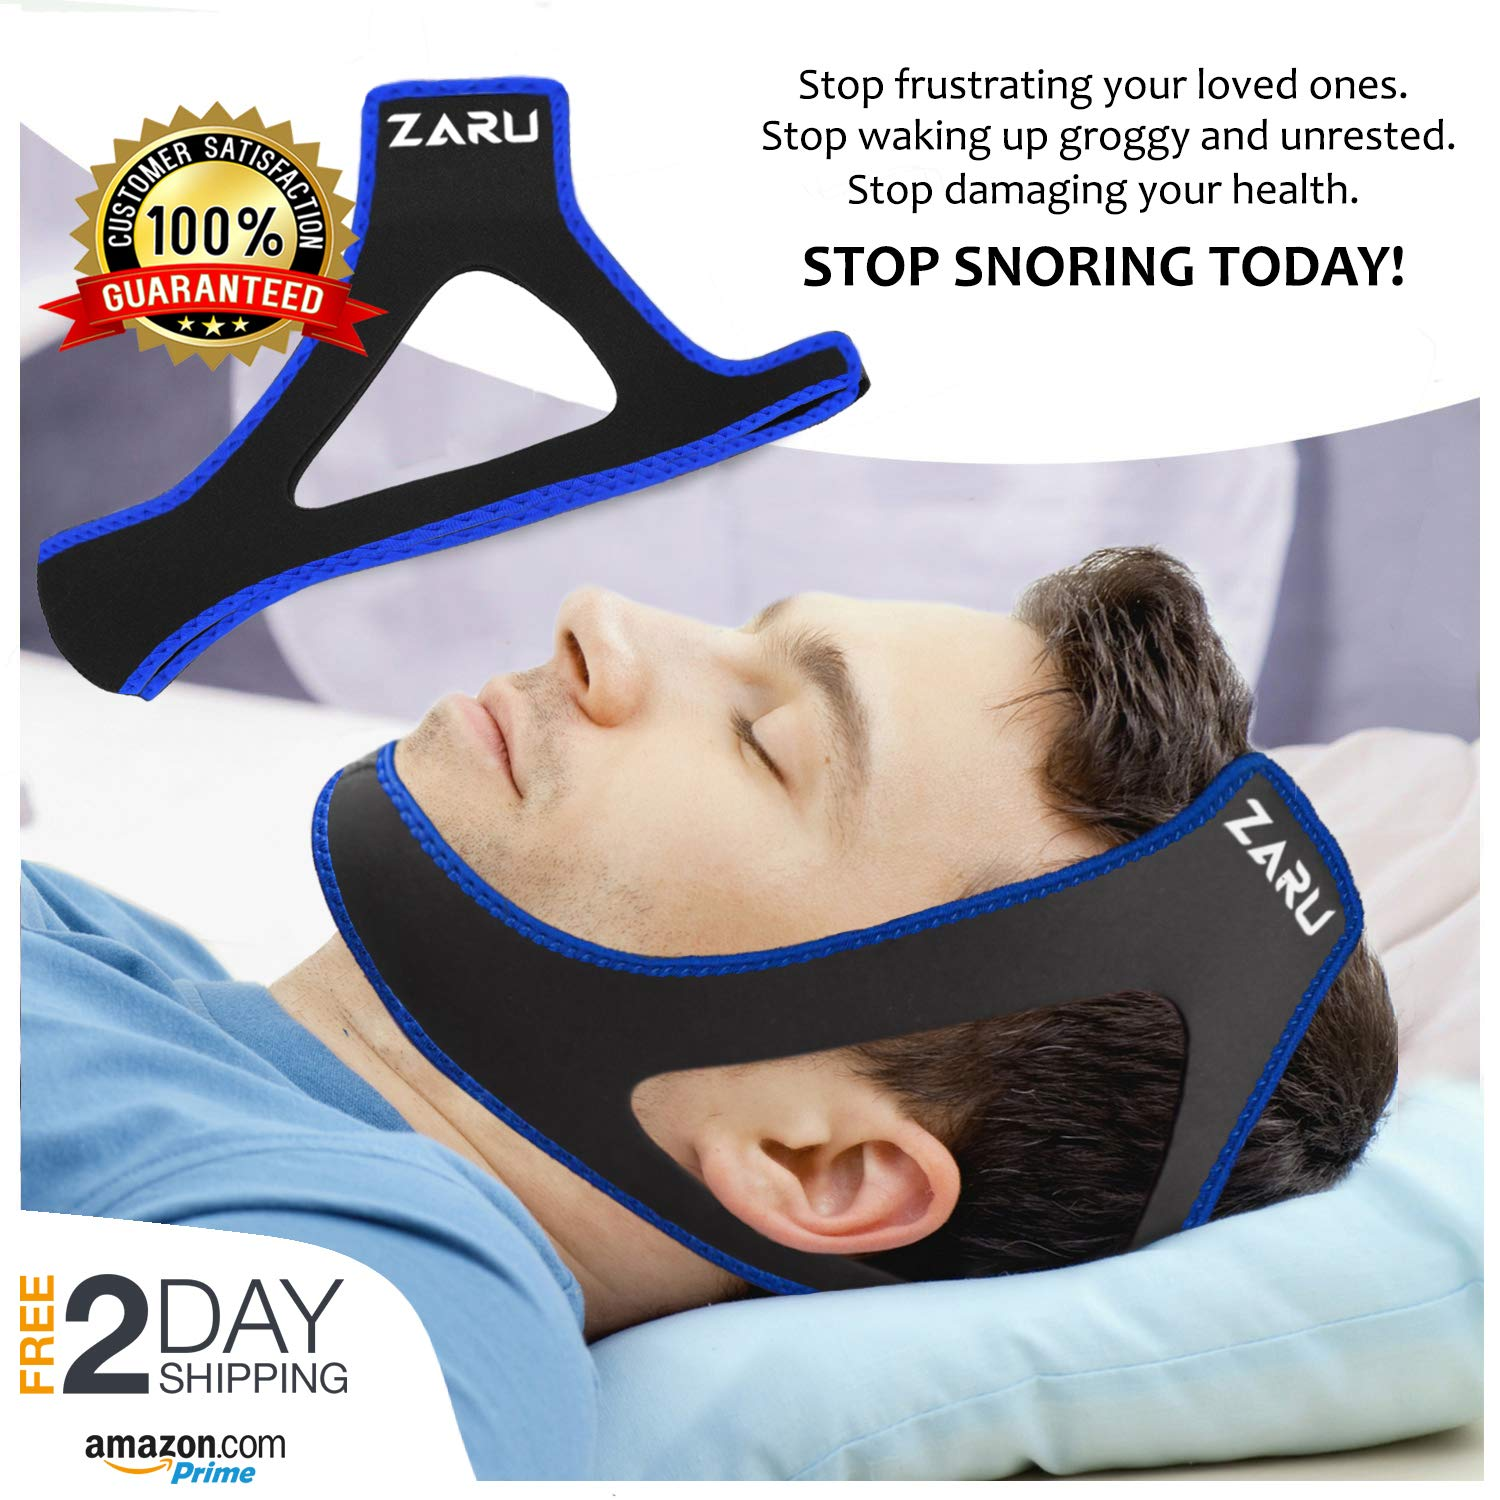 Premium Anti Snore Chin Strap [2019 Upgraded Version] - Advanced Snoring Solution Scientifically Designed to Stop Snoring Naturally and Give You The Best Sleep of Your Life (black.) by ZARU